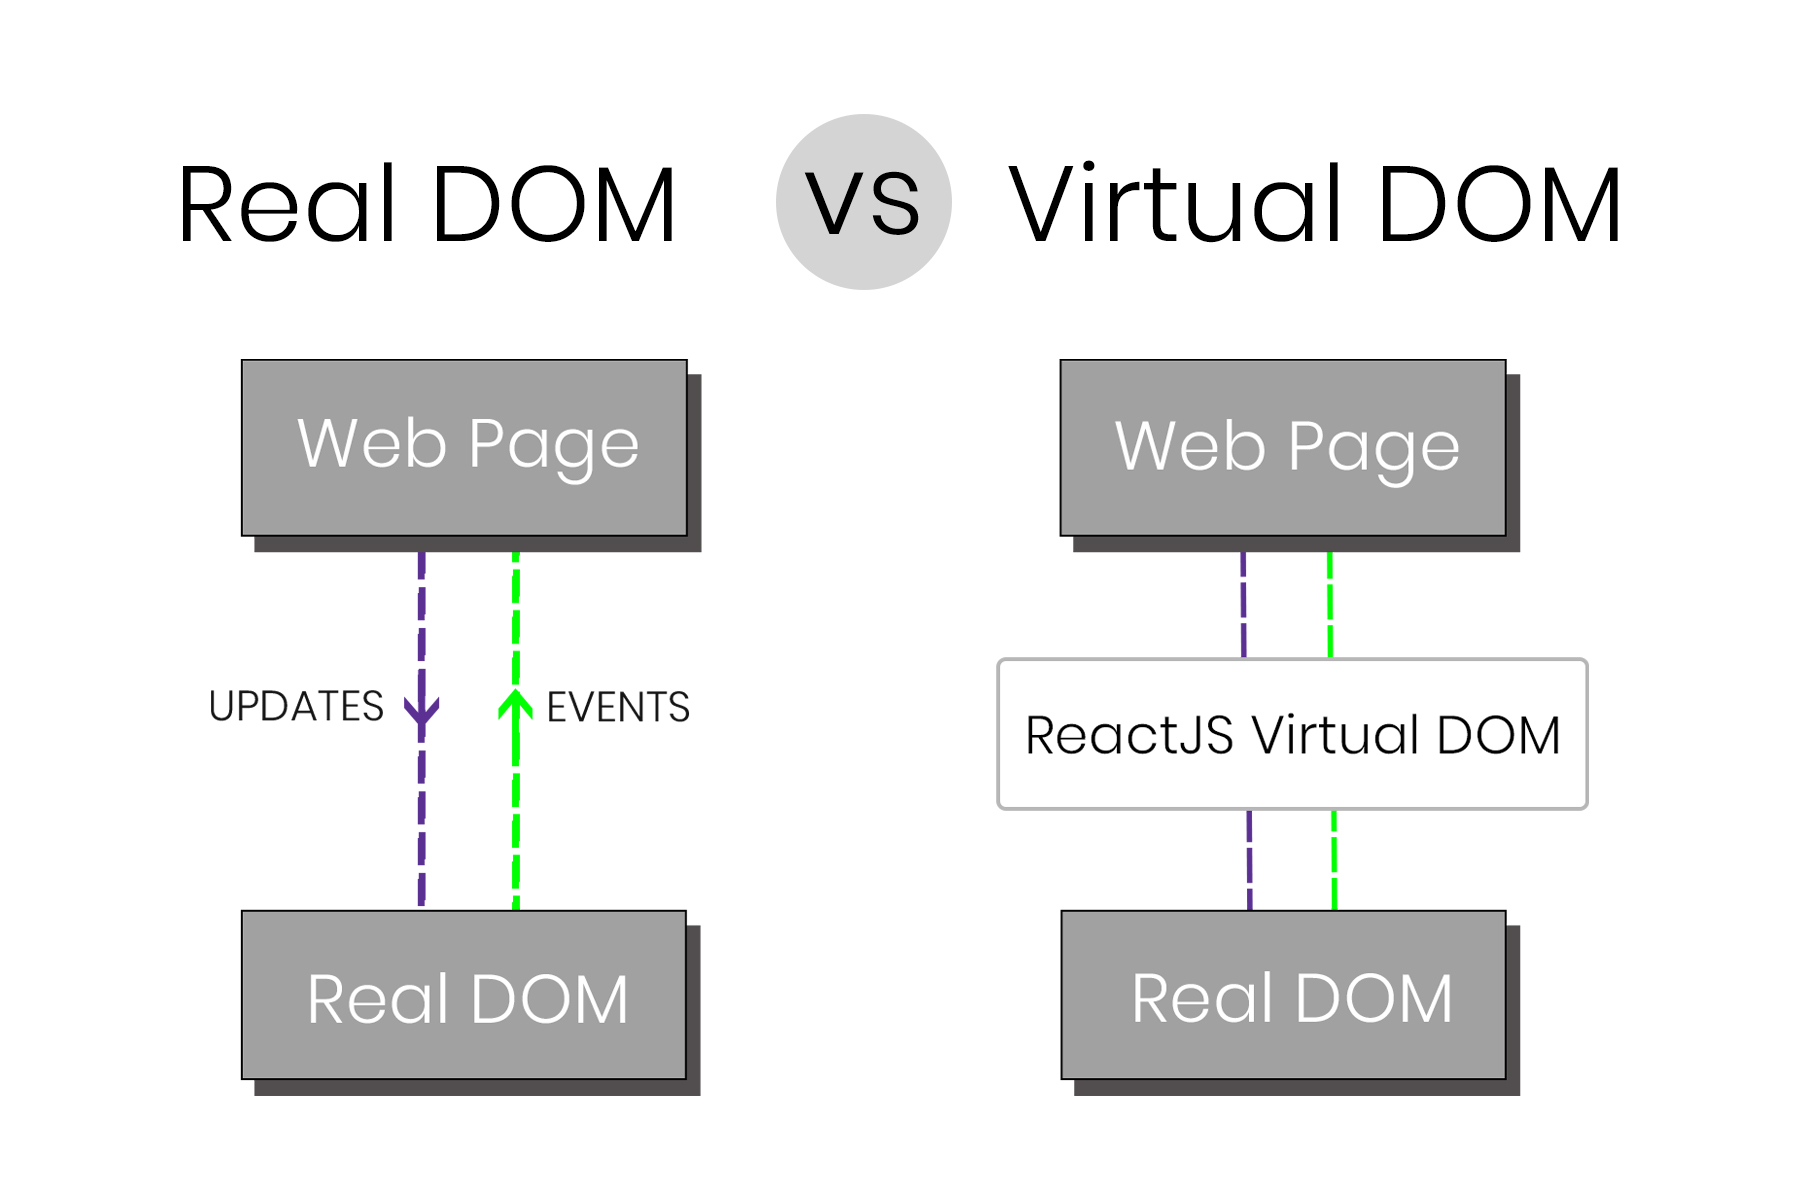 graphic of a comparison between a real and virtual DOM